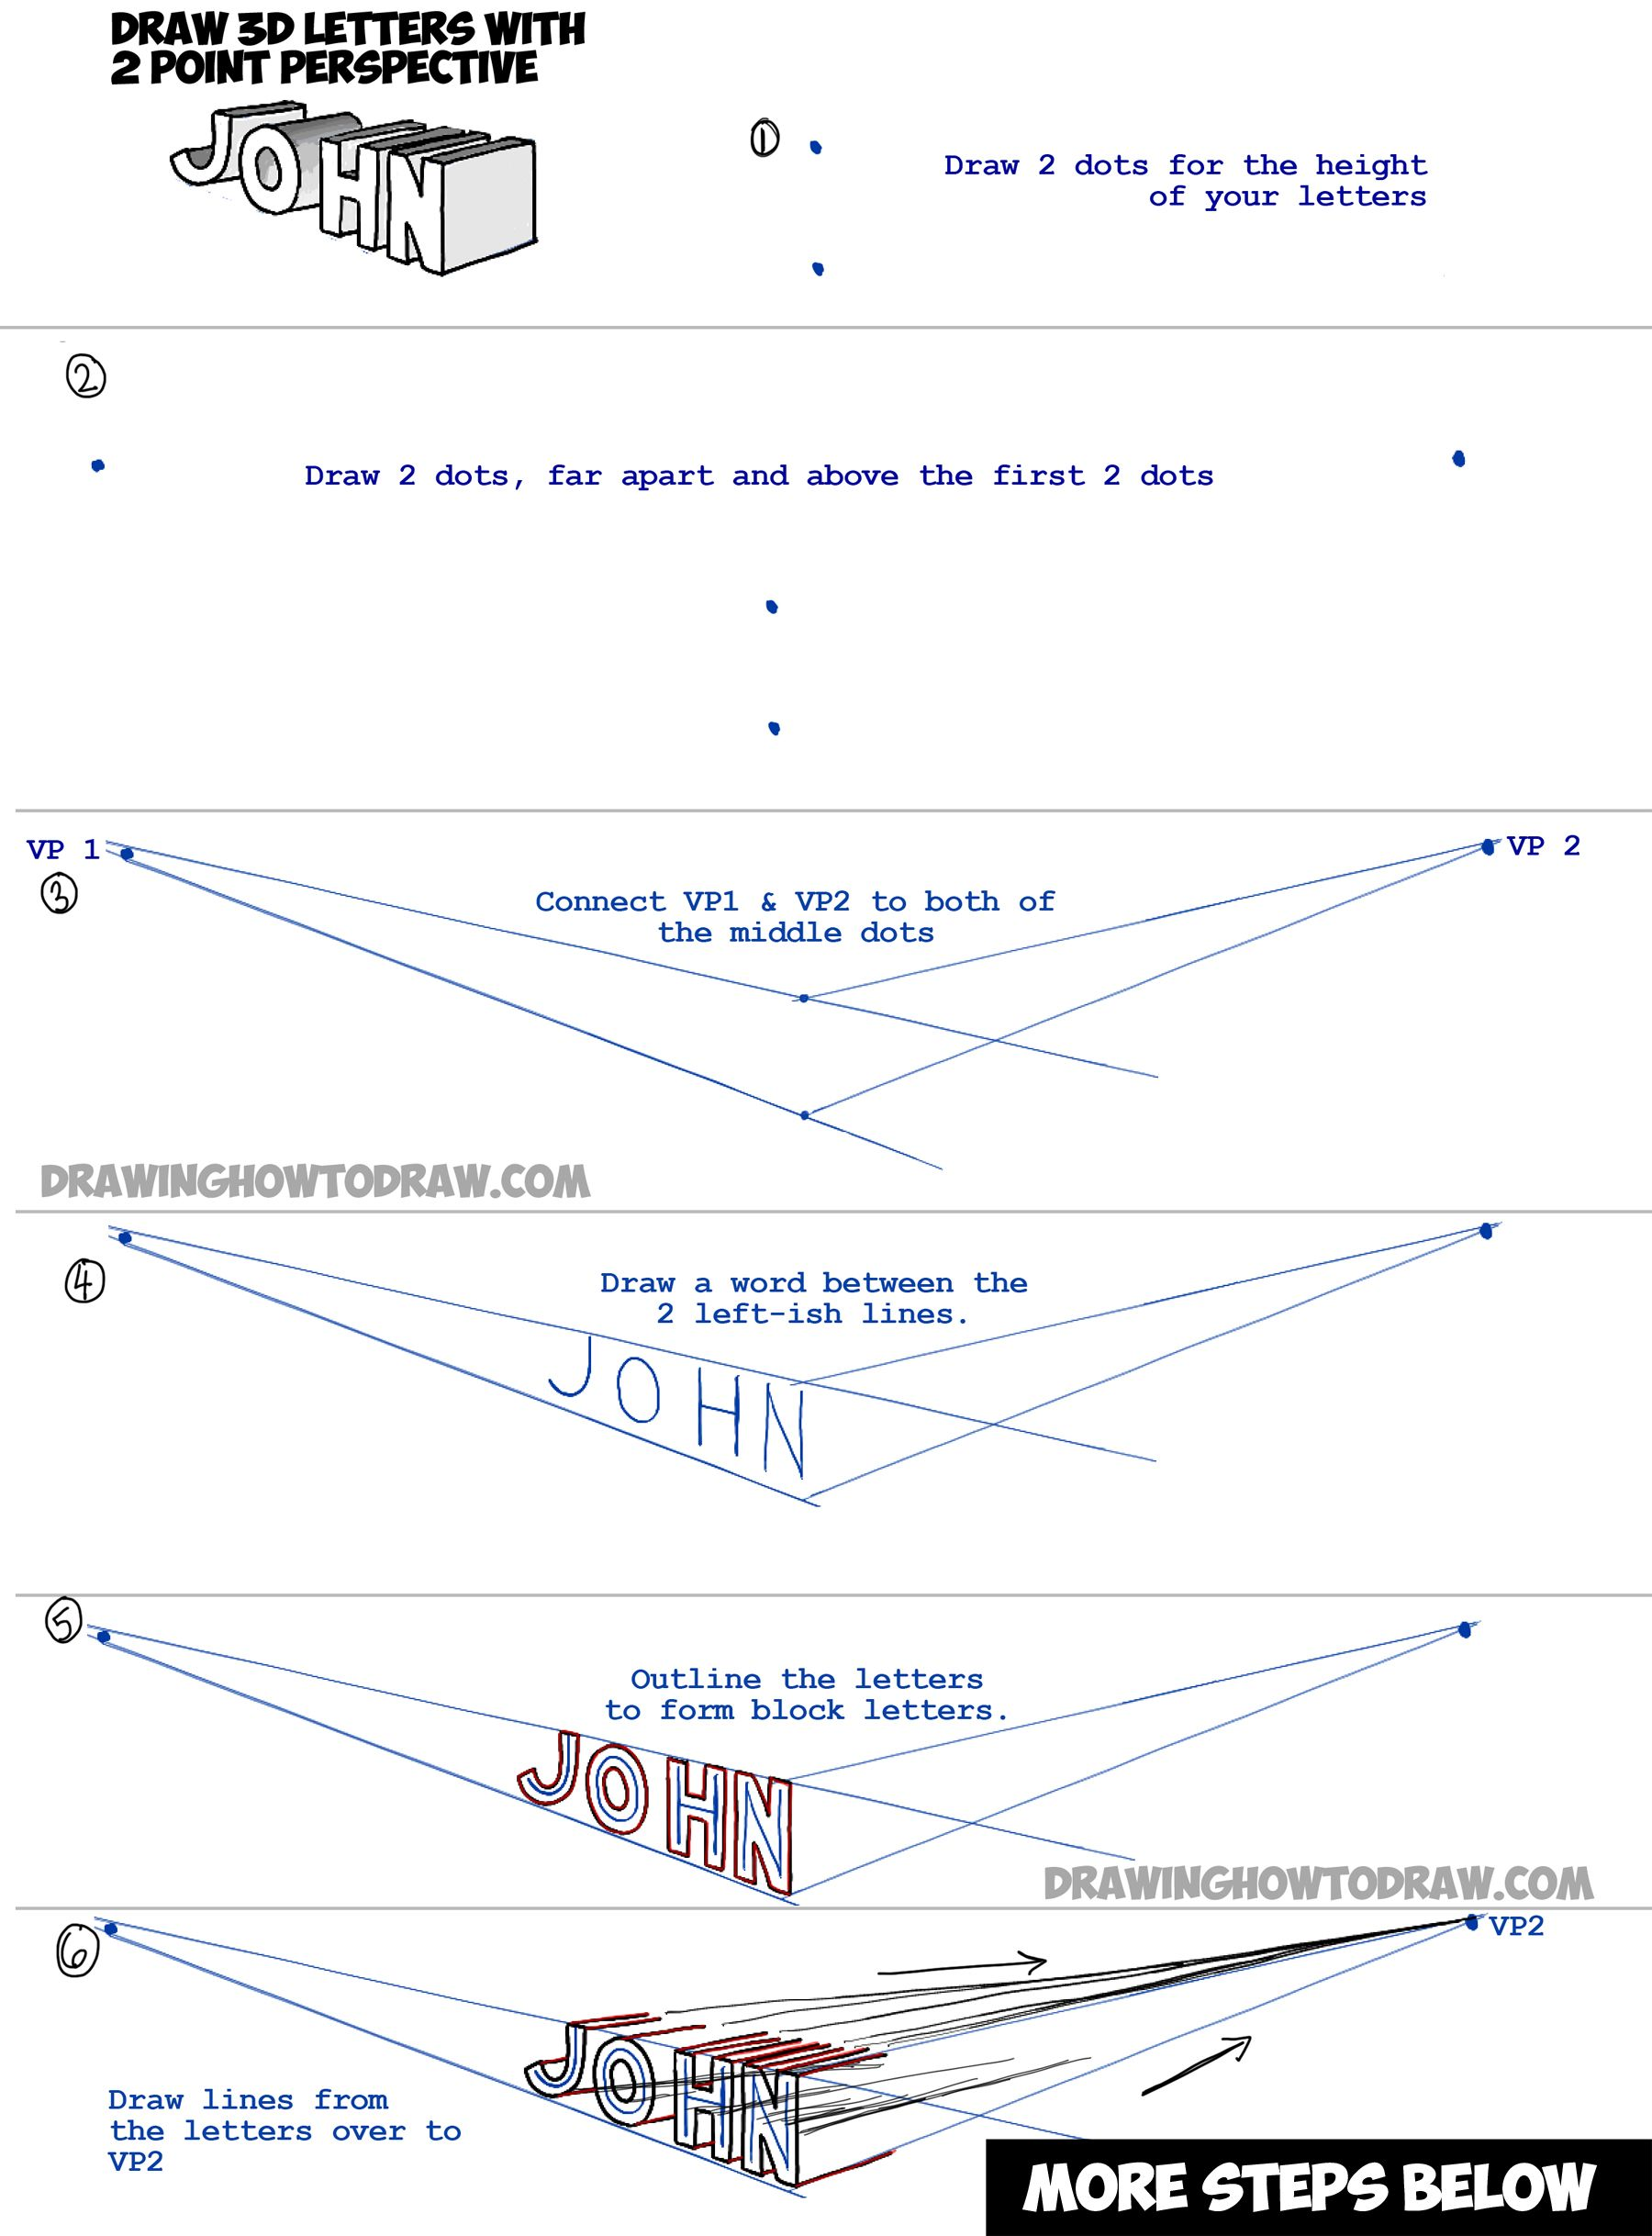 How To Draw 3 Dimensional Letters With 2 Point Perspective Simple Drawing Tutorial How To Draw Step By Step Drawing Tutorials Perspective Drawing Lessons Perspective Drawing Drawing Lessons